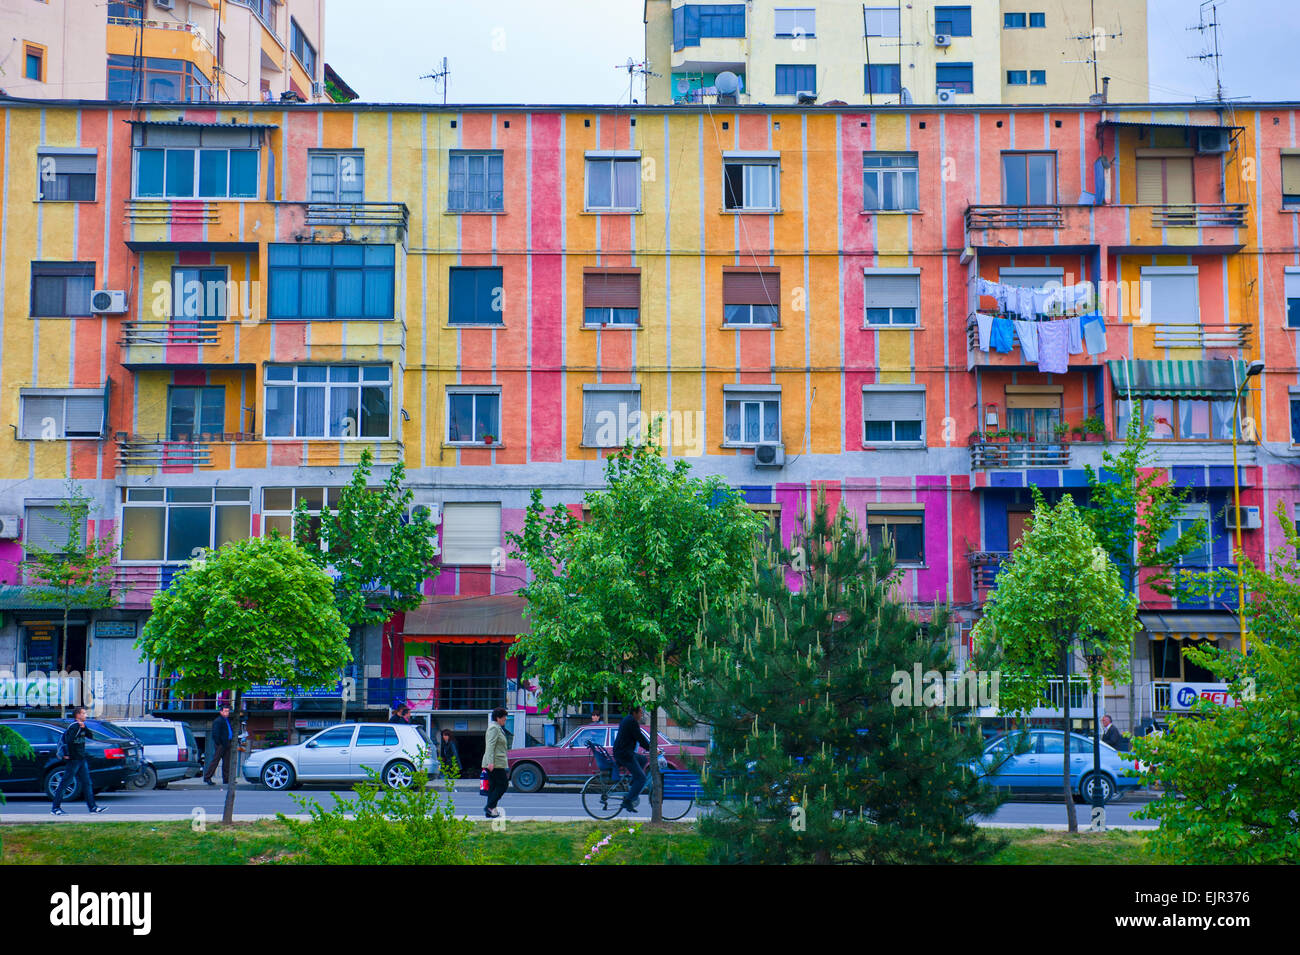 Colourful buildings in the center of Tirana, Albania - Stock Image